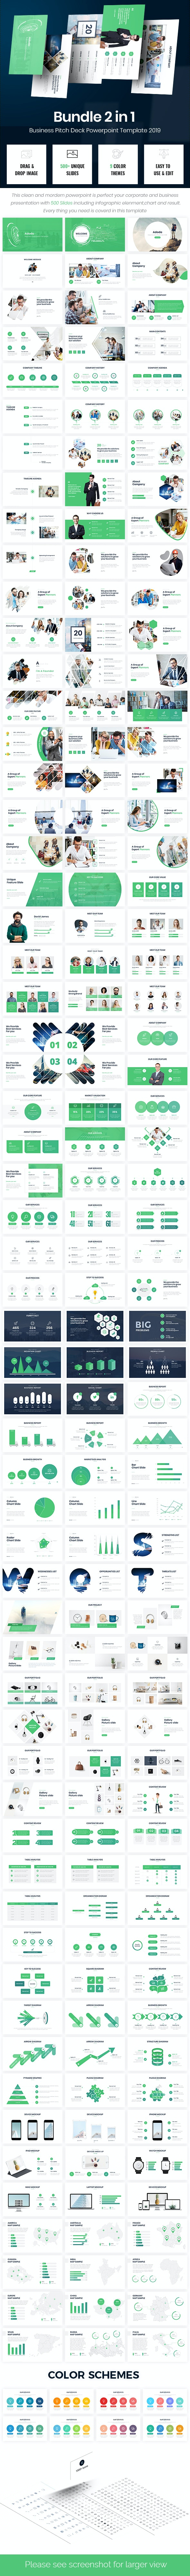 Bundle Smartest Pitch Deck Powerpoint Template - Pitch Deck PowerPoint Templates